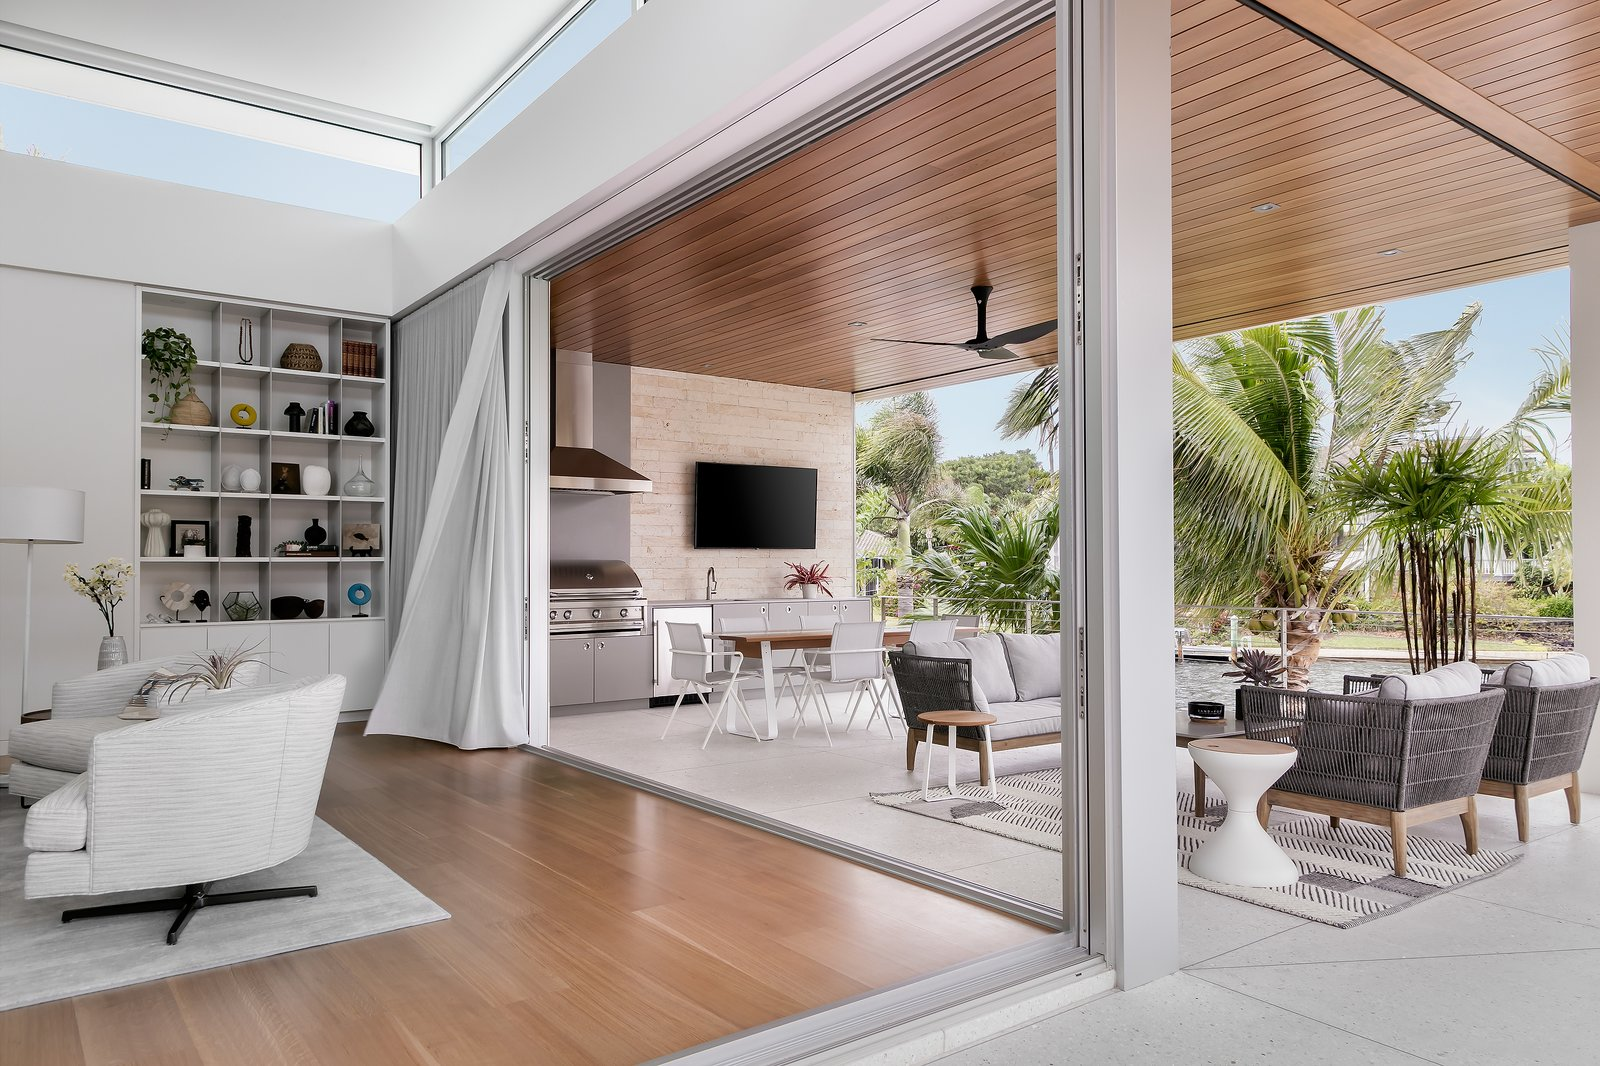 Living Room, Chair, Sectional, Coffee Tables, End Tables, Bookcase, Ceiling Lighting, Sofa, Floor Lighting, Recessed Lighting, Concrete Floor, Medium Hardwood Floor, and Accent Lighting  Bayview House by Leader Design Studio